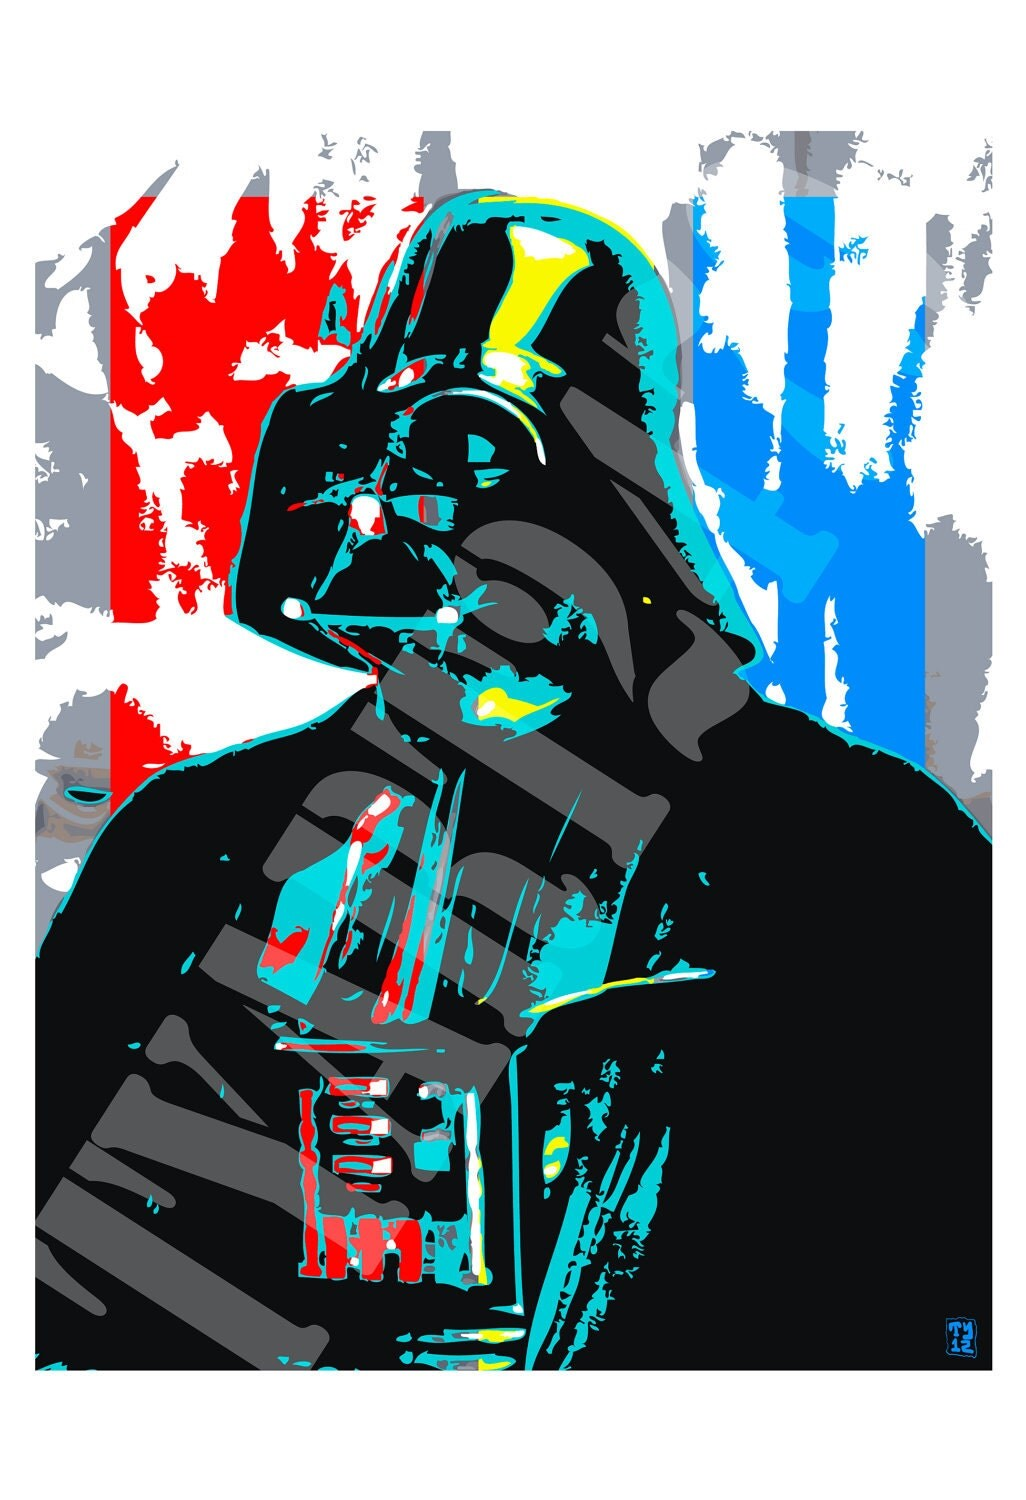 Darth Vader Star Wars Pop Art Poster Print By Tyart2479 On